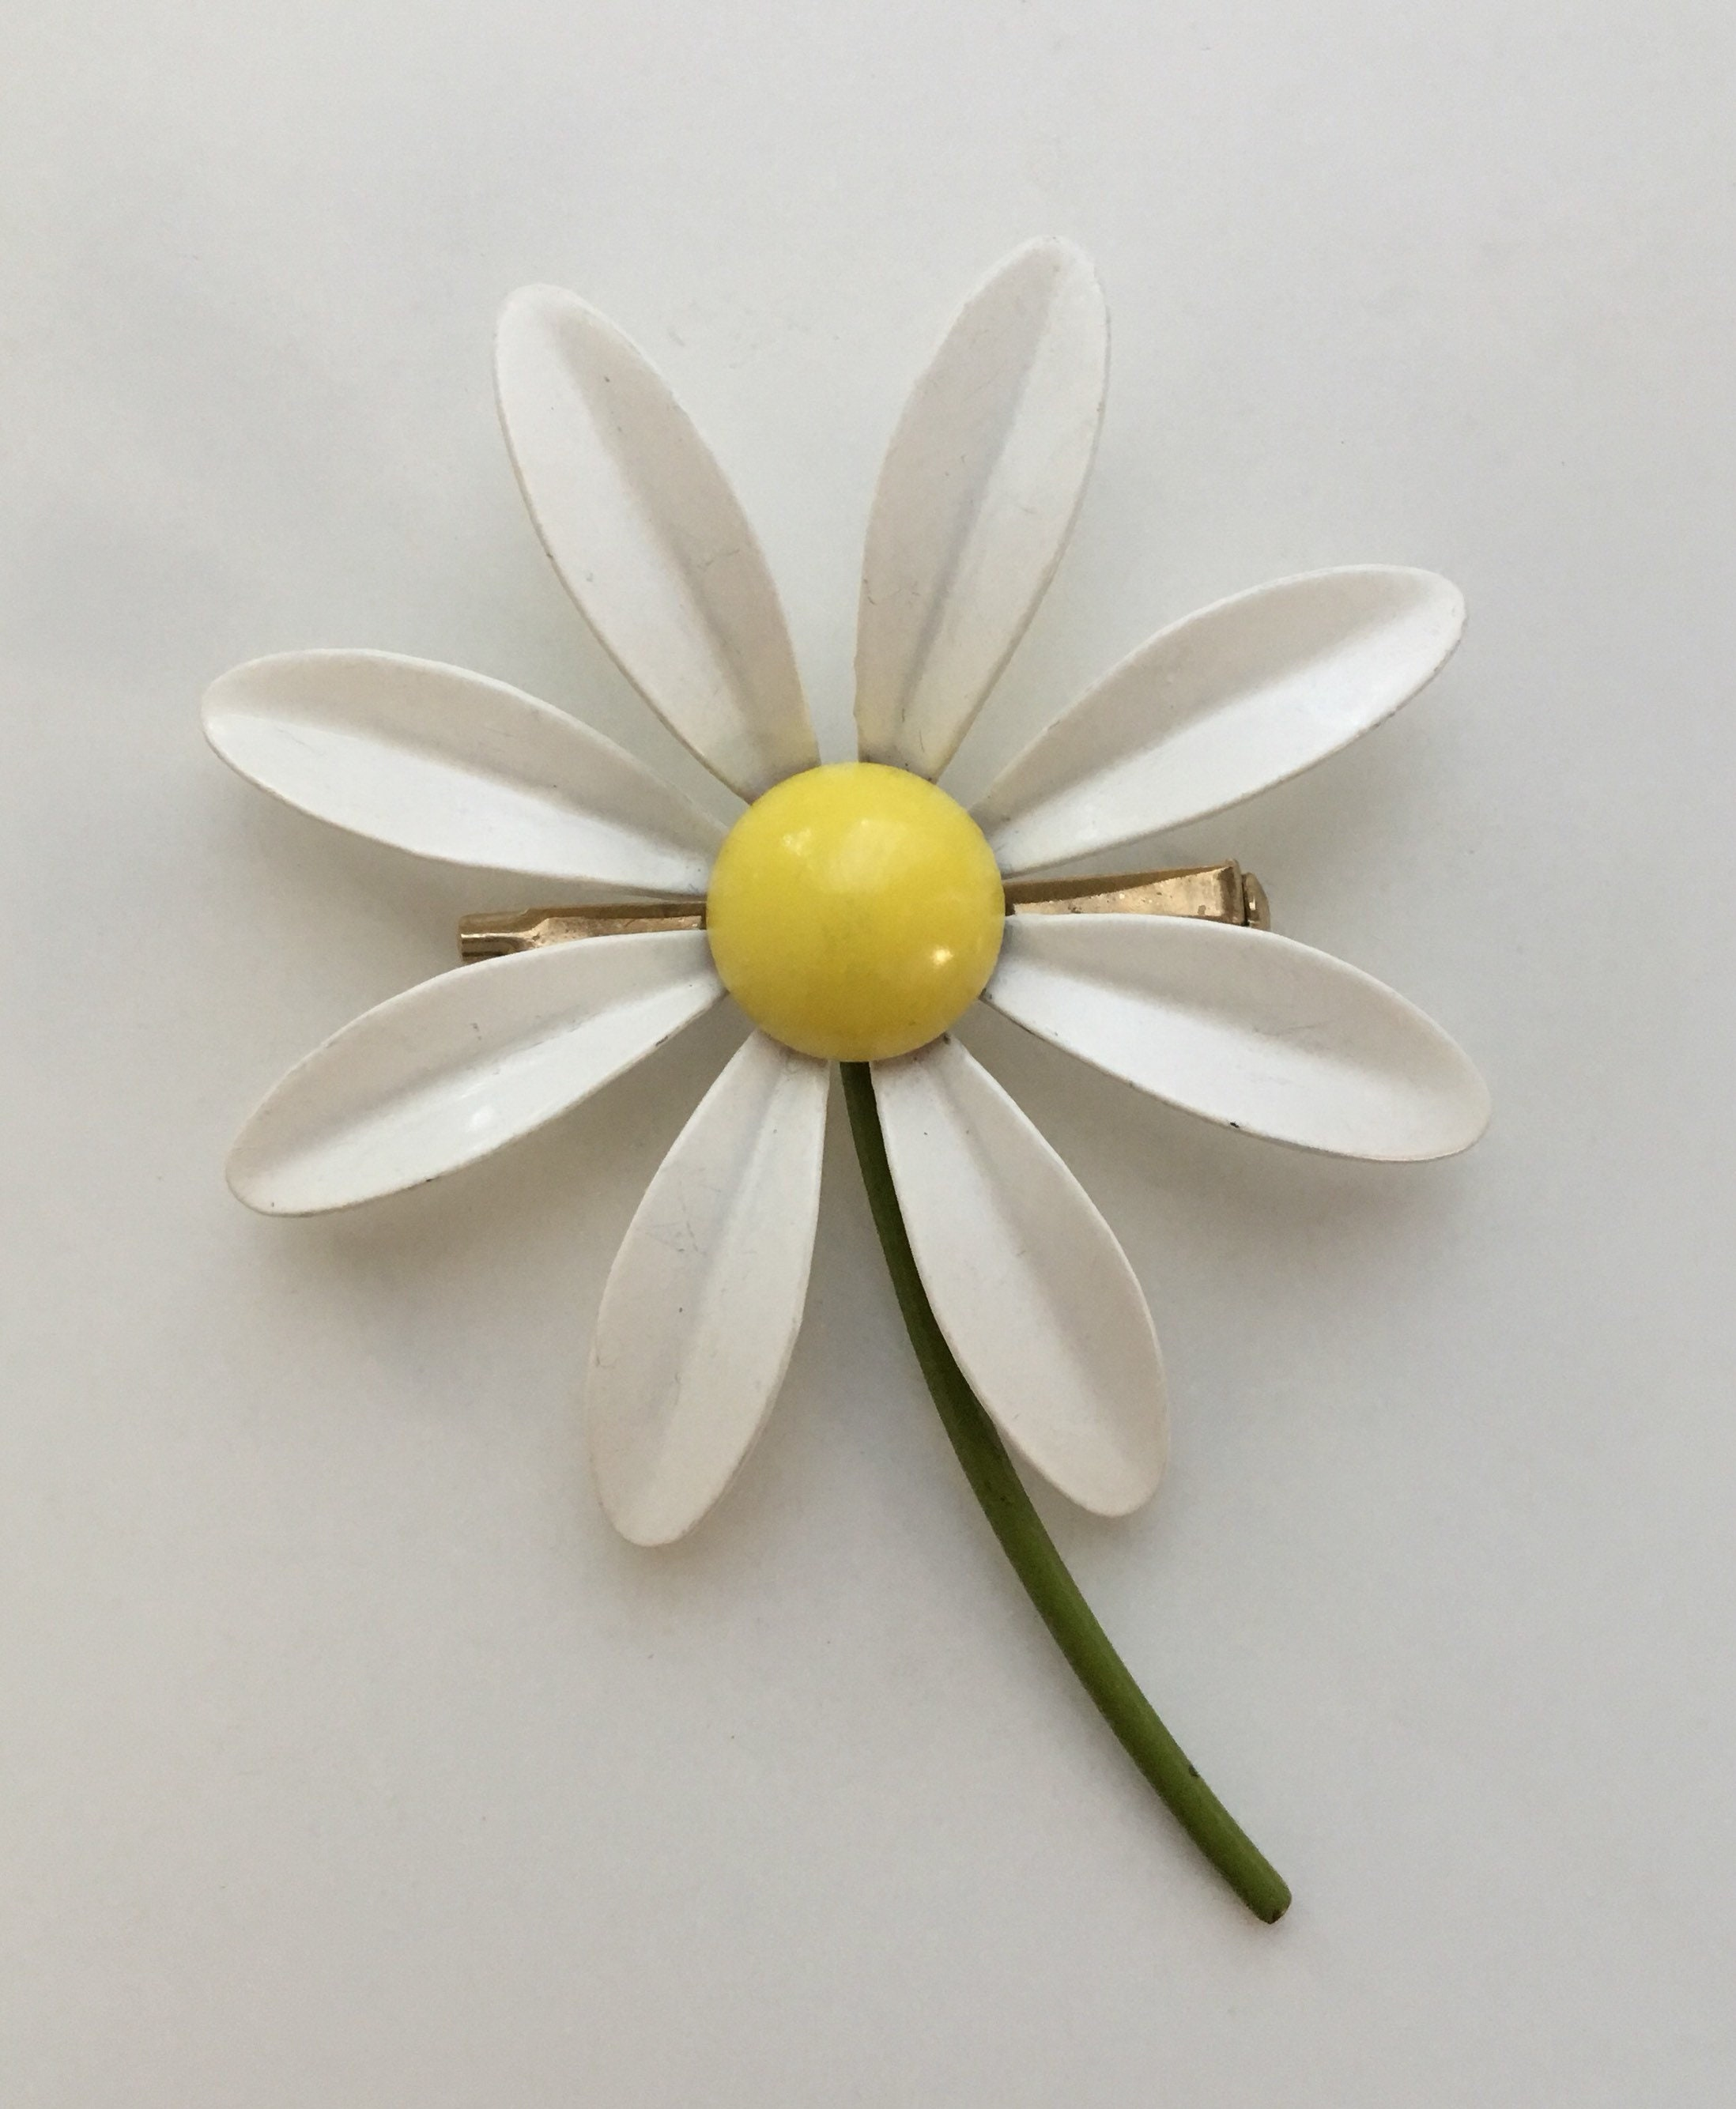 Vintage 1960s White Green Yellow Metal Daisy Flower Brooch Pin